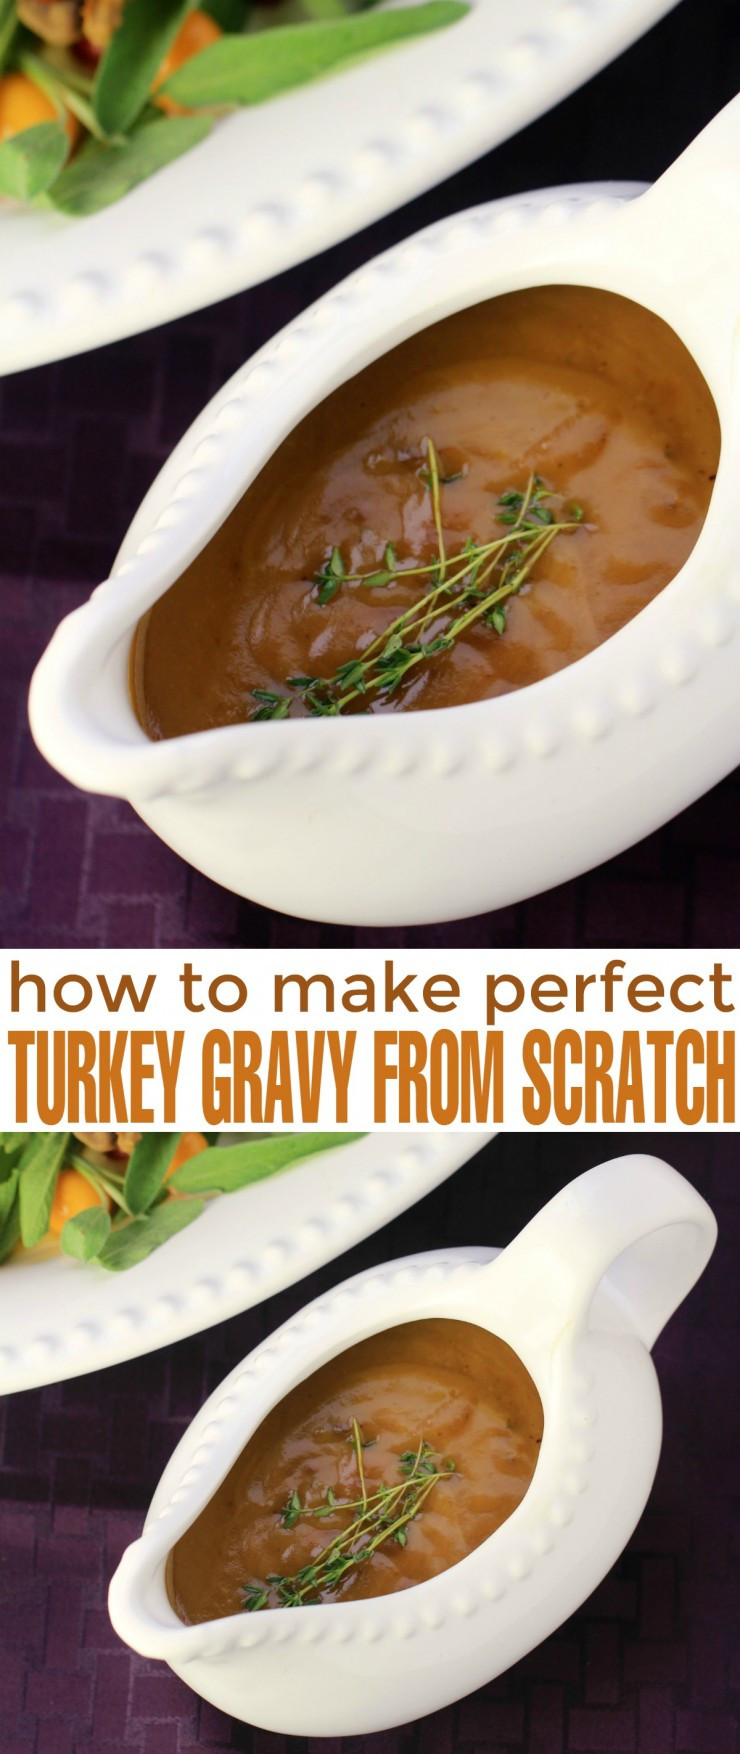 How To Make Turkey Gravy From Scratch  How to Make Perfect Turkey Gravy from Scratch Life Love Liz